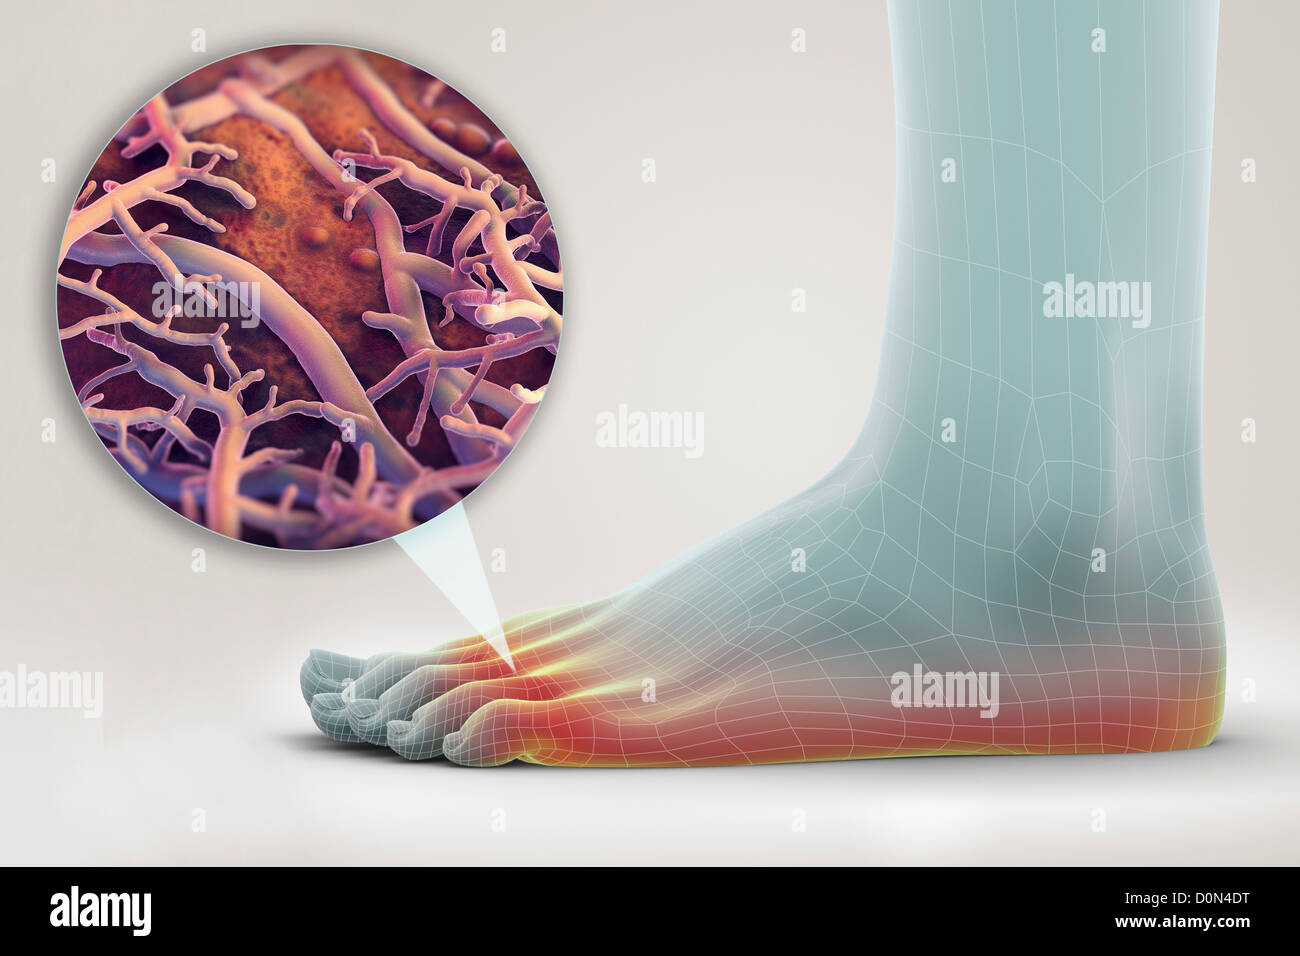 A left foot wireframe appearance. foot is highlighted represent presence fungal infection known as Athlete's - Stock Image